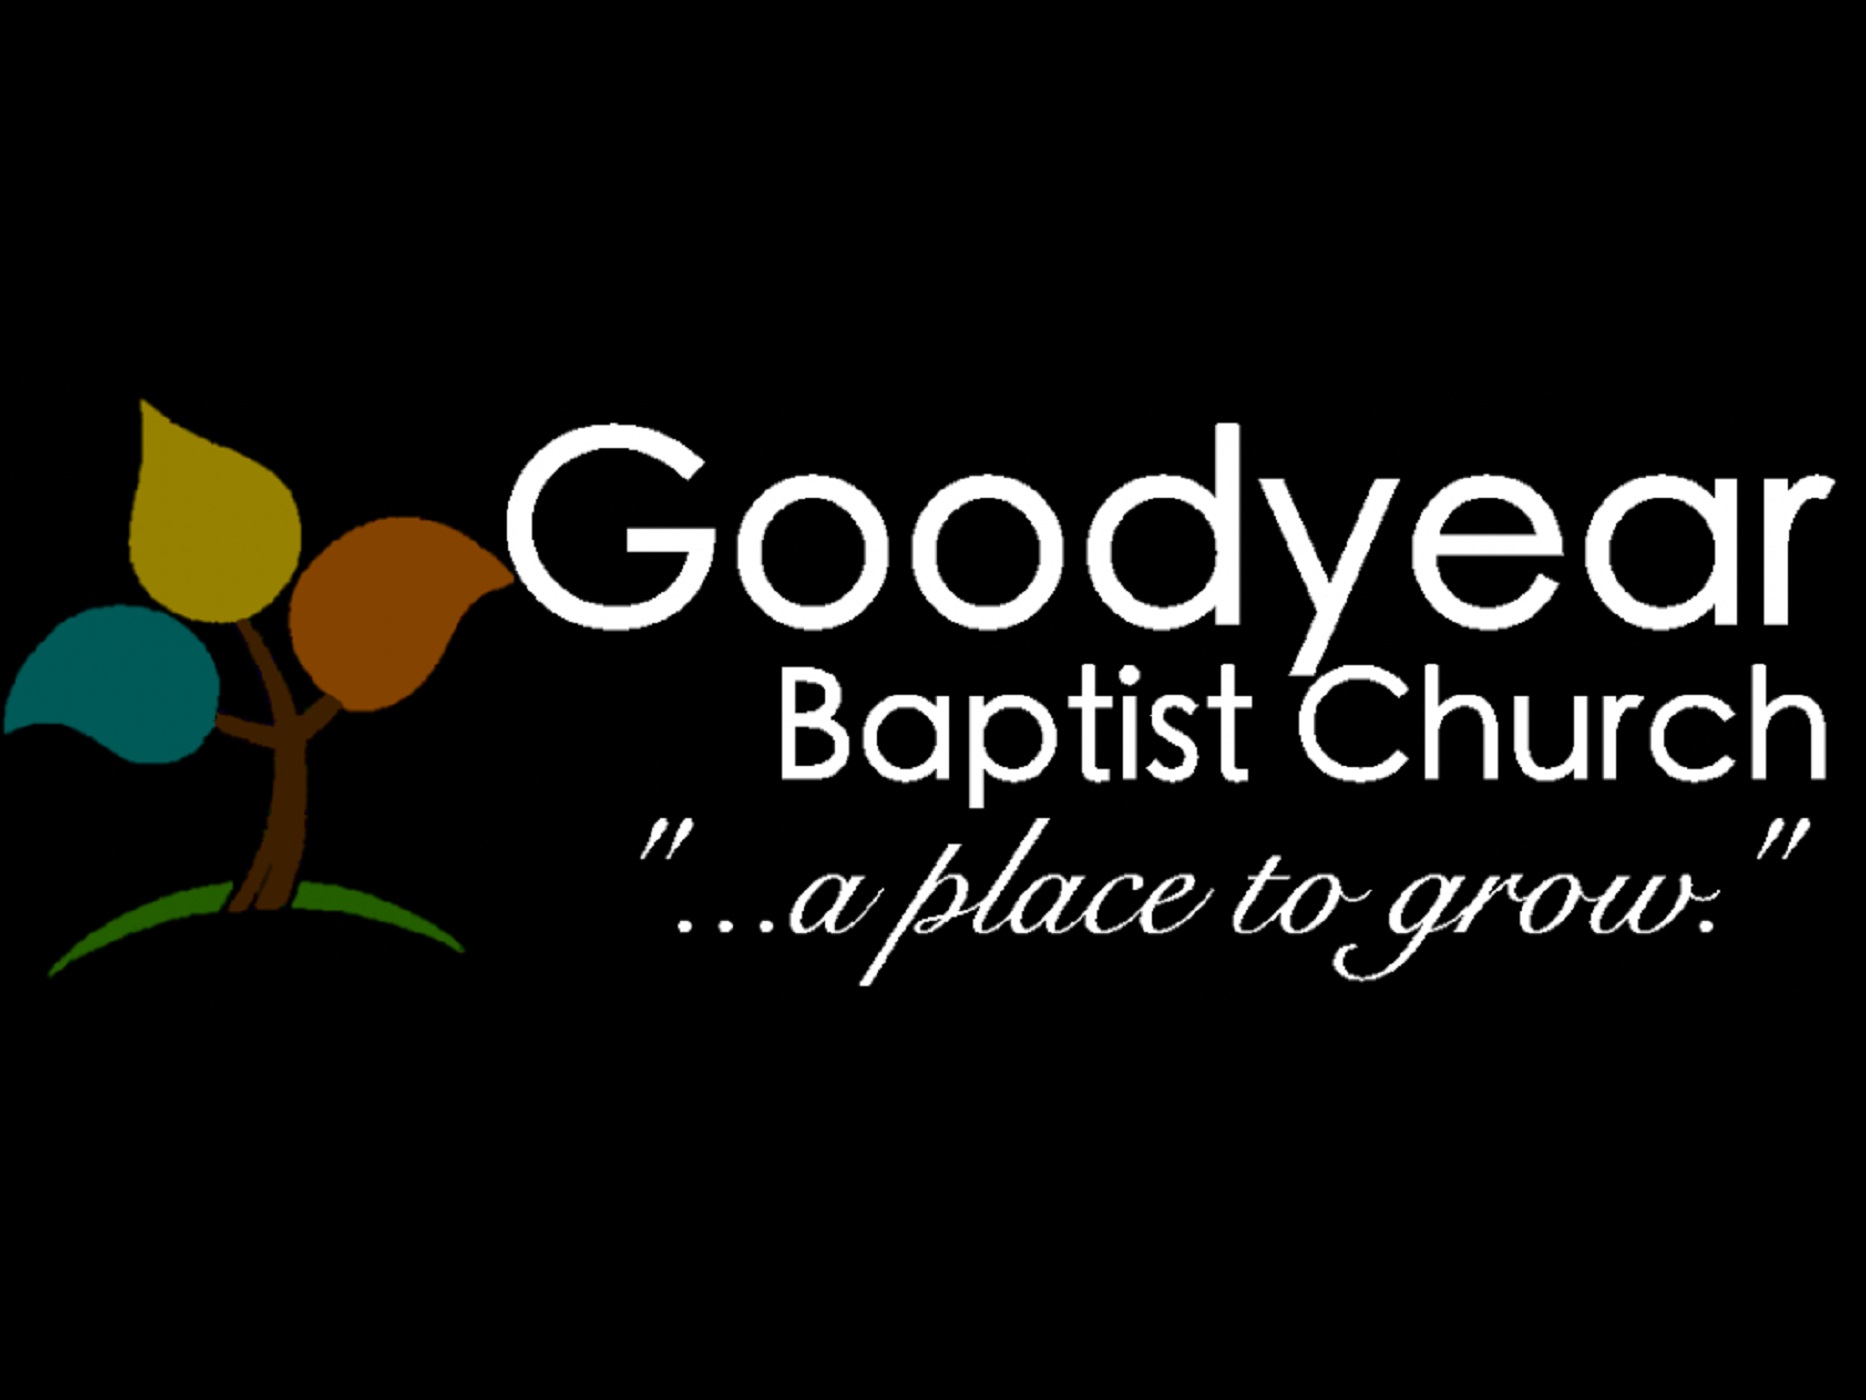 Goodyear Baptist Church